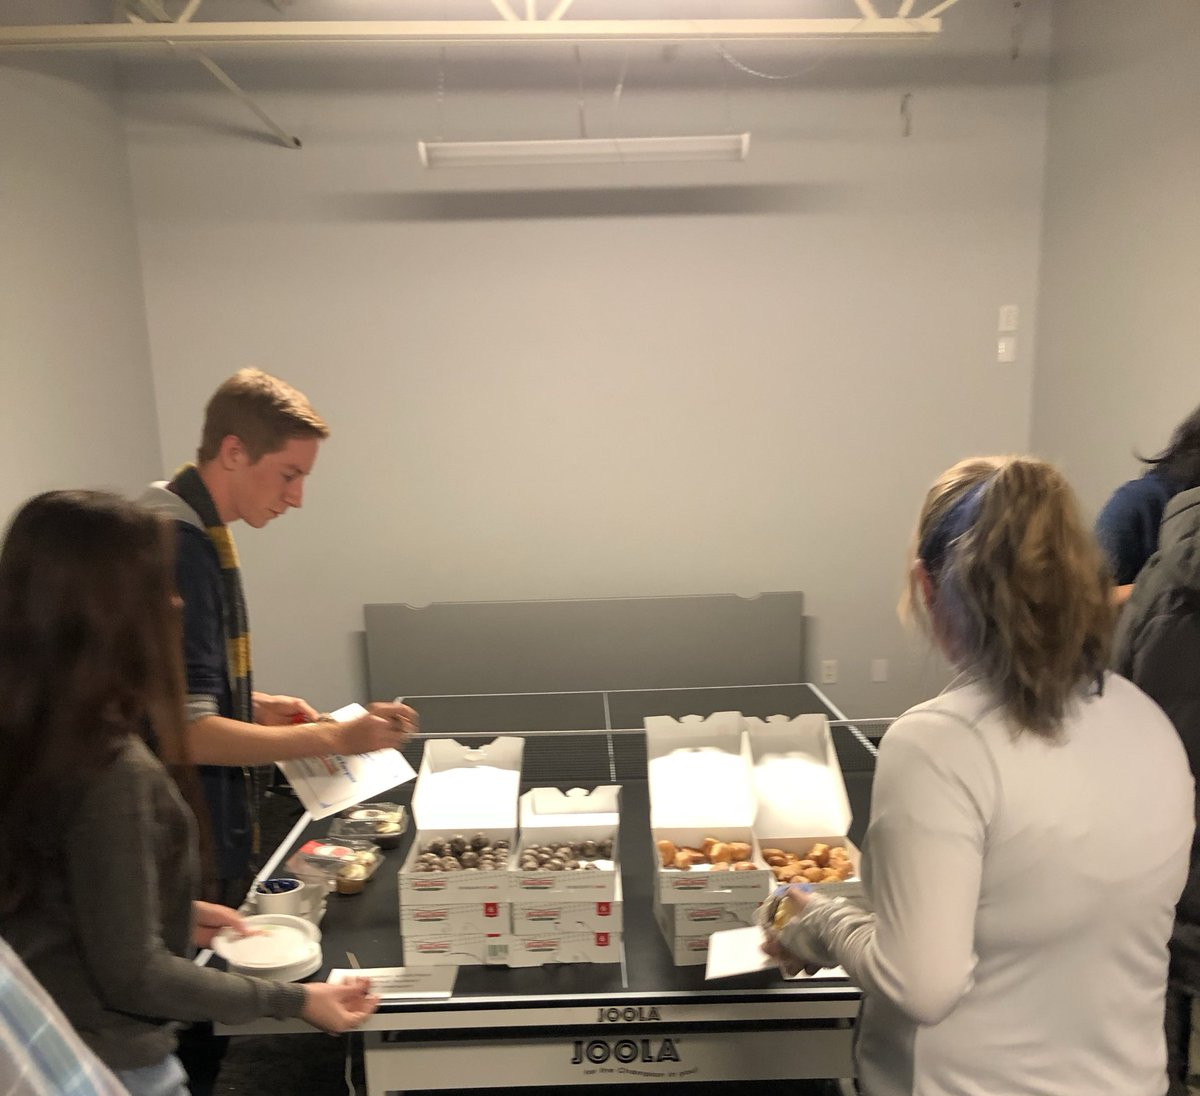 Getting some delicious donut holes!! #ThisIsHowWeBoost #foodie #workculture https://t.co/lCmZ8iq5Ar